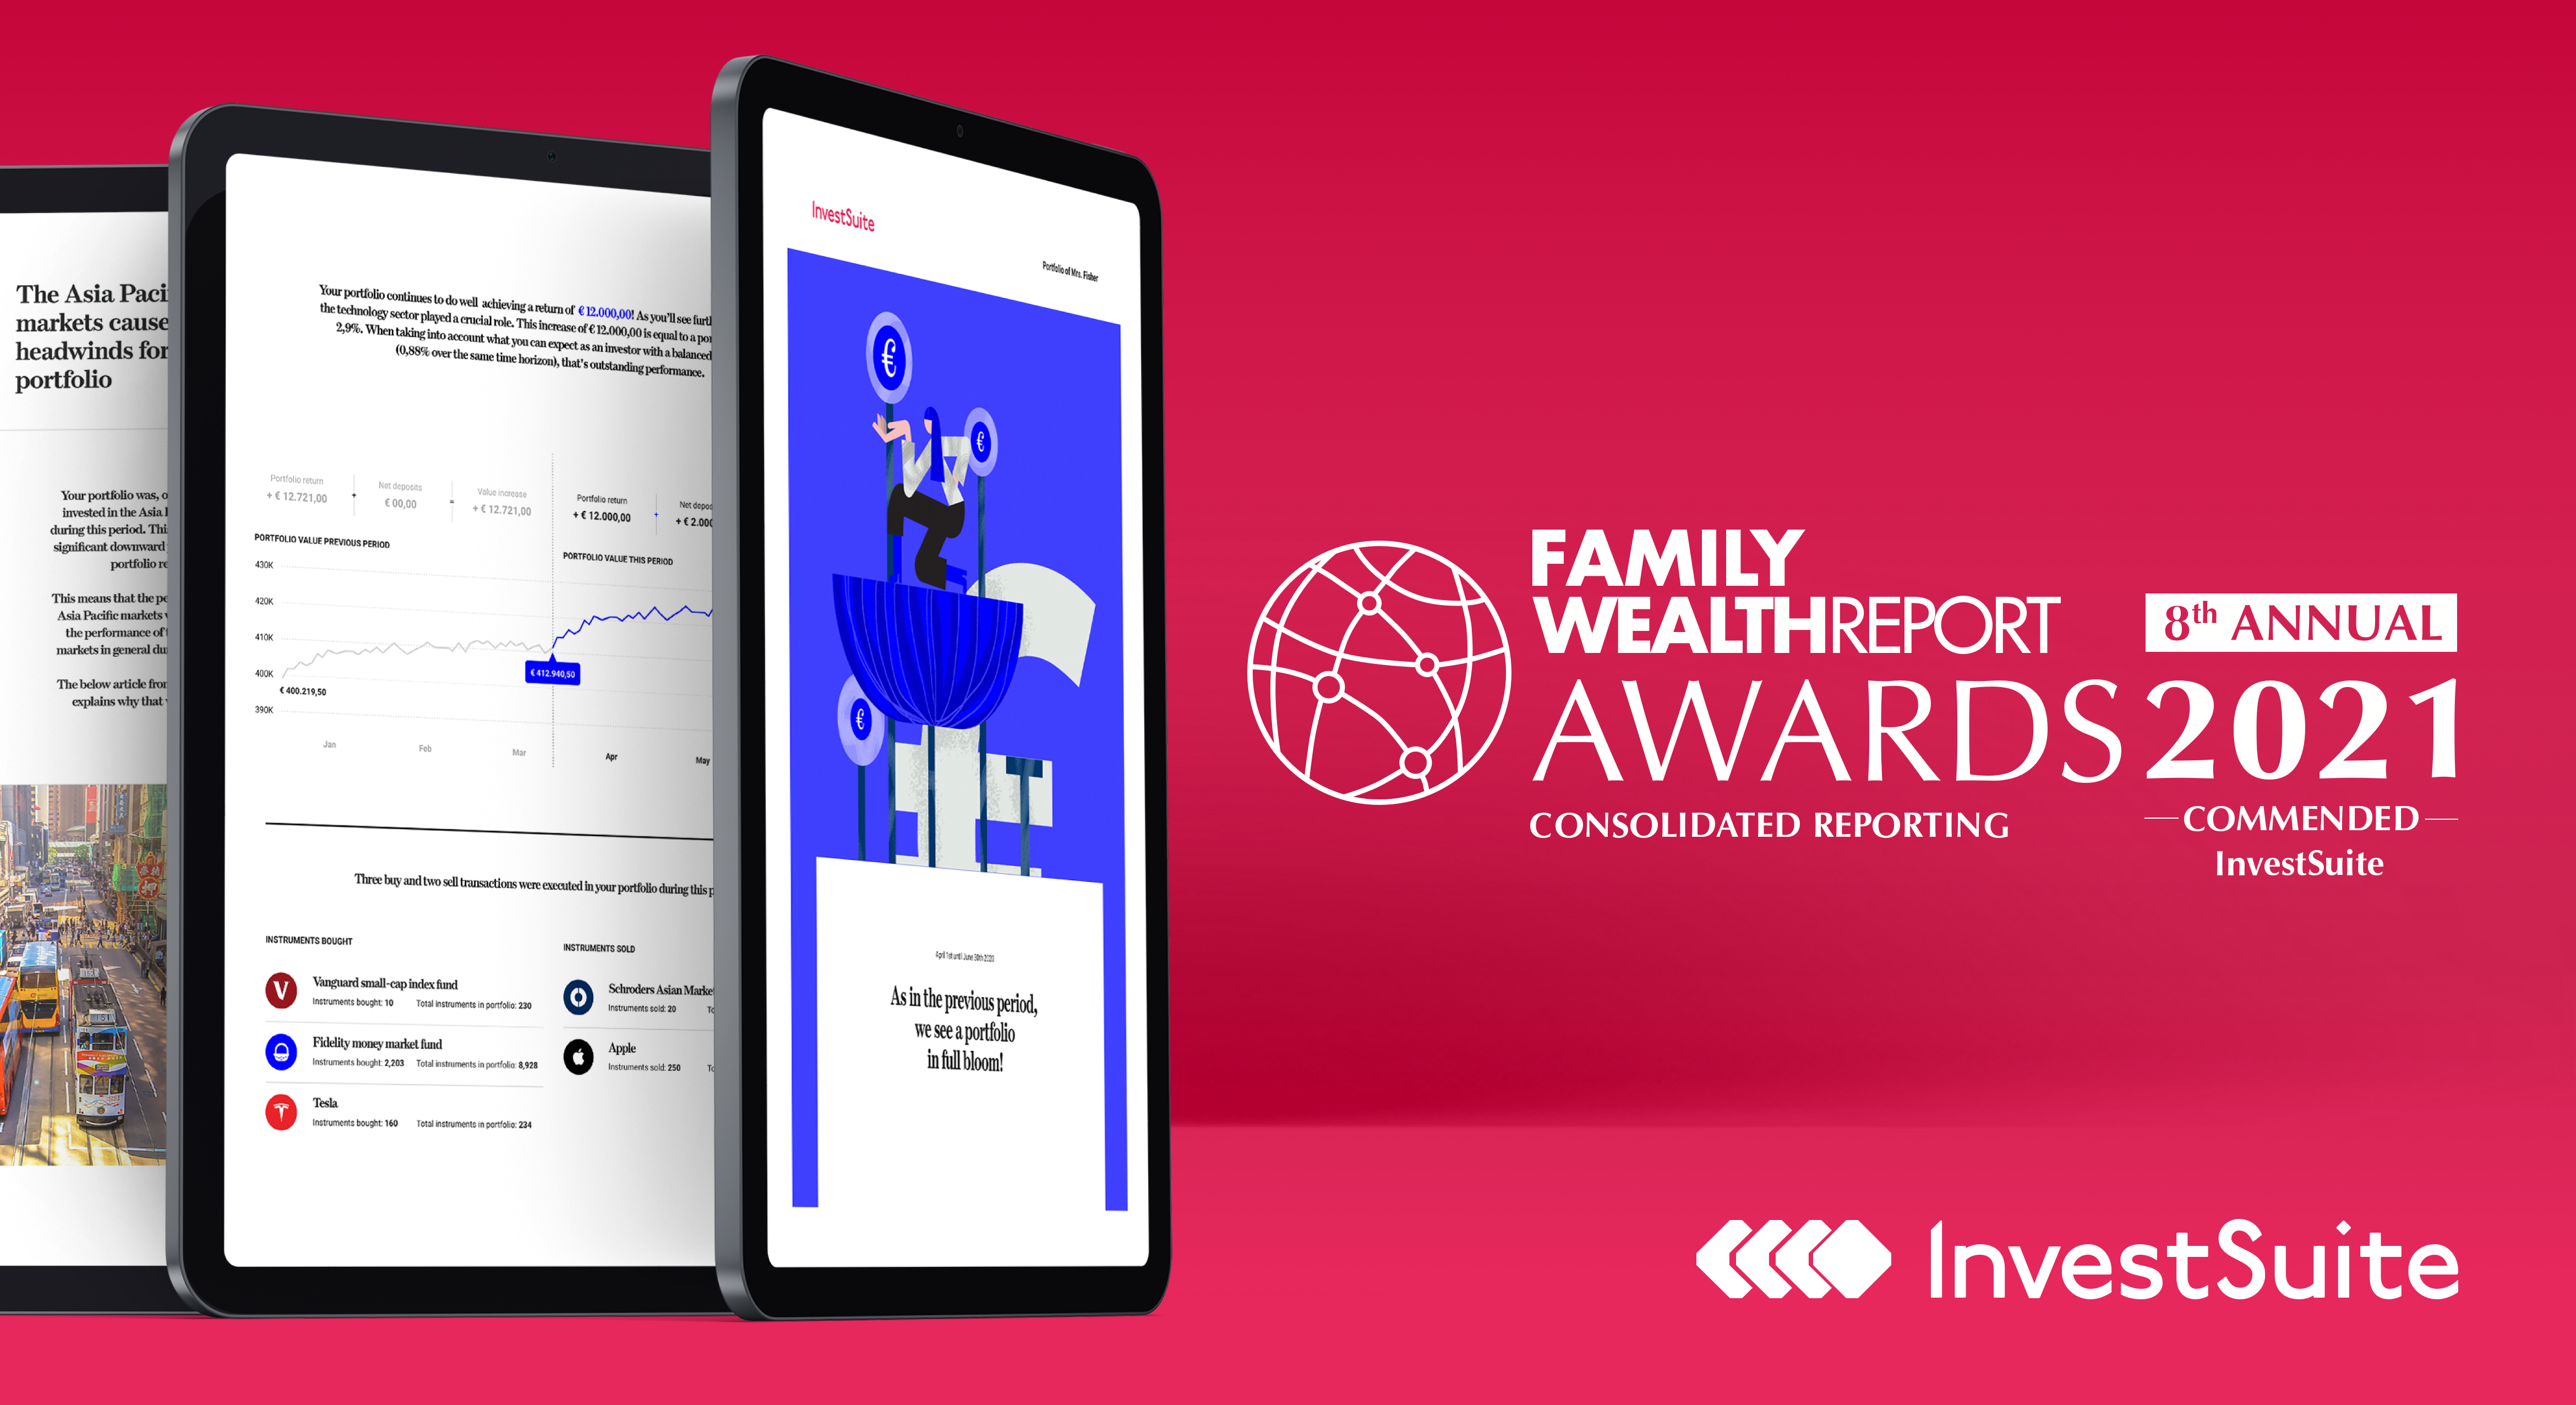 InvestSuite has been commended in the Consolidated Reporting category at the 8th Family Wealth Report Awards.